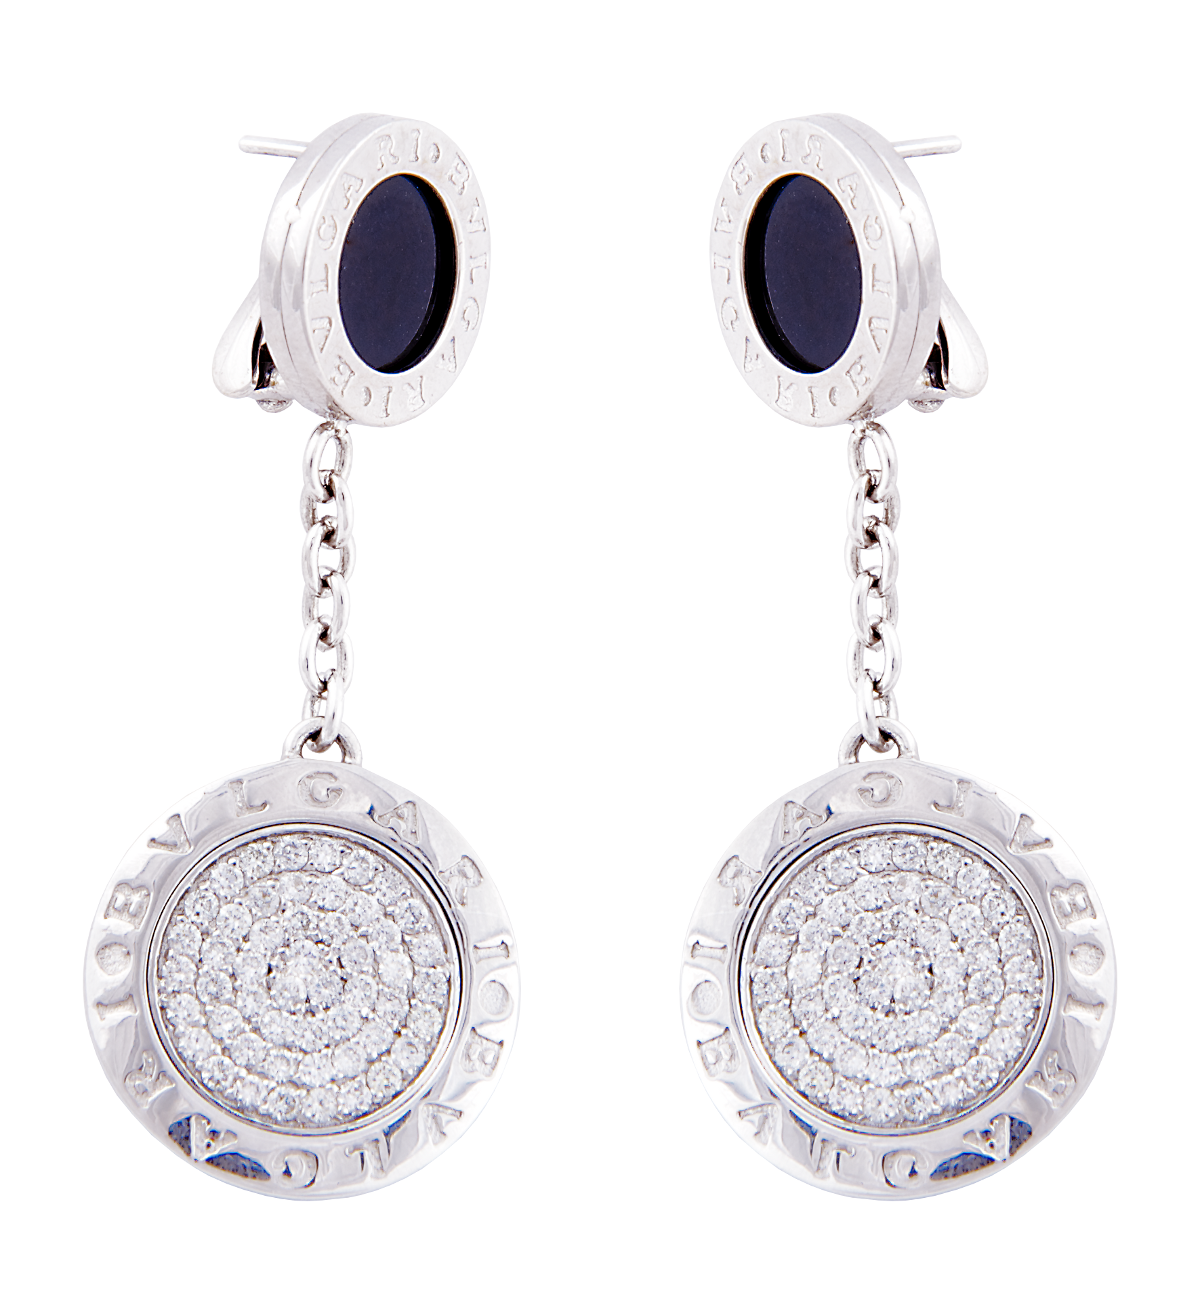 earrings PNG image